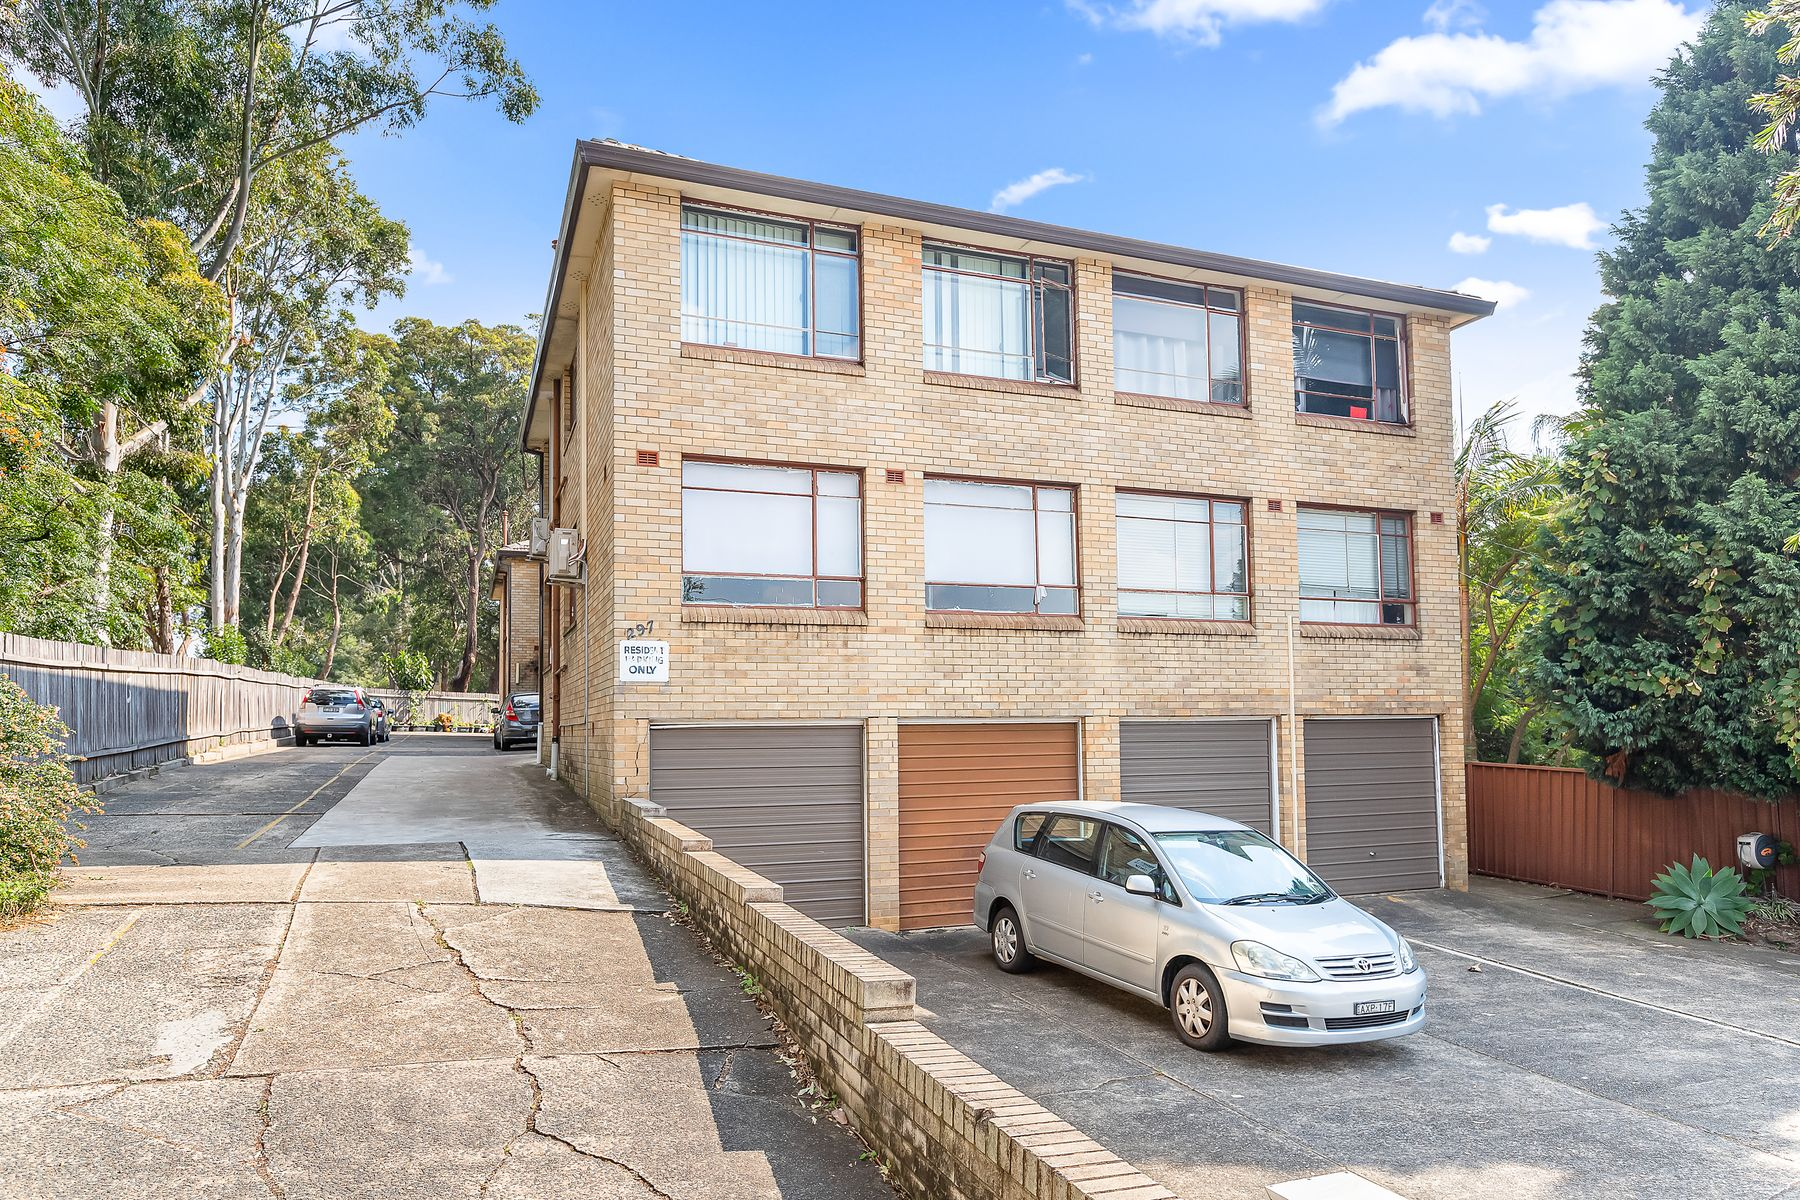 3/297 King Georges Road, Roselands, NSW 2196